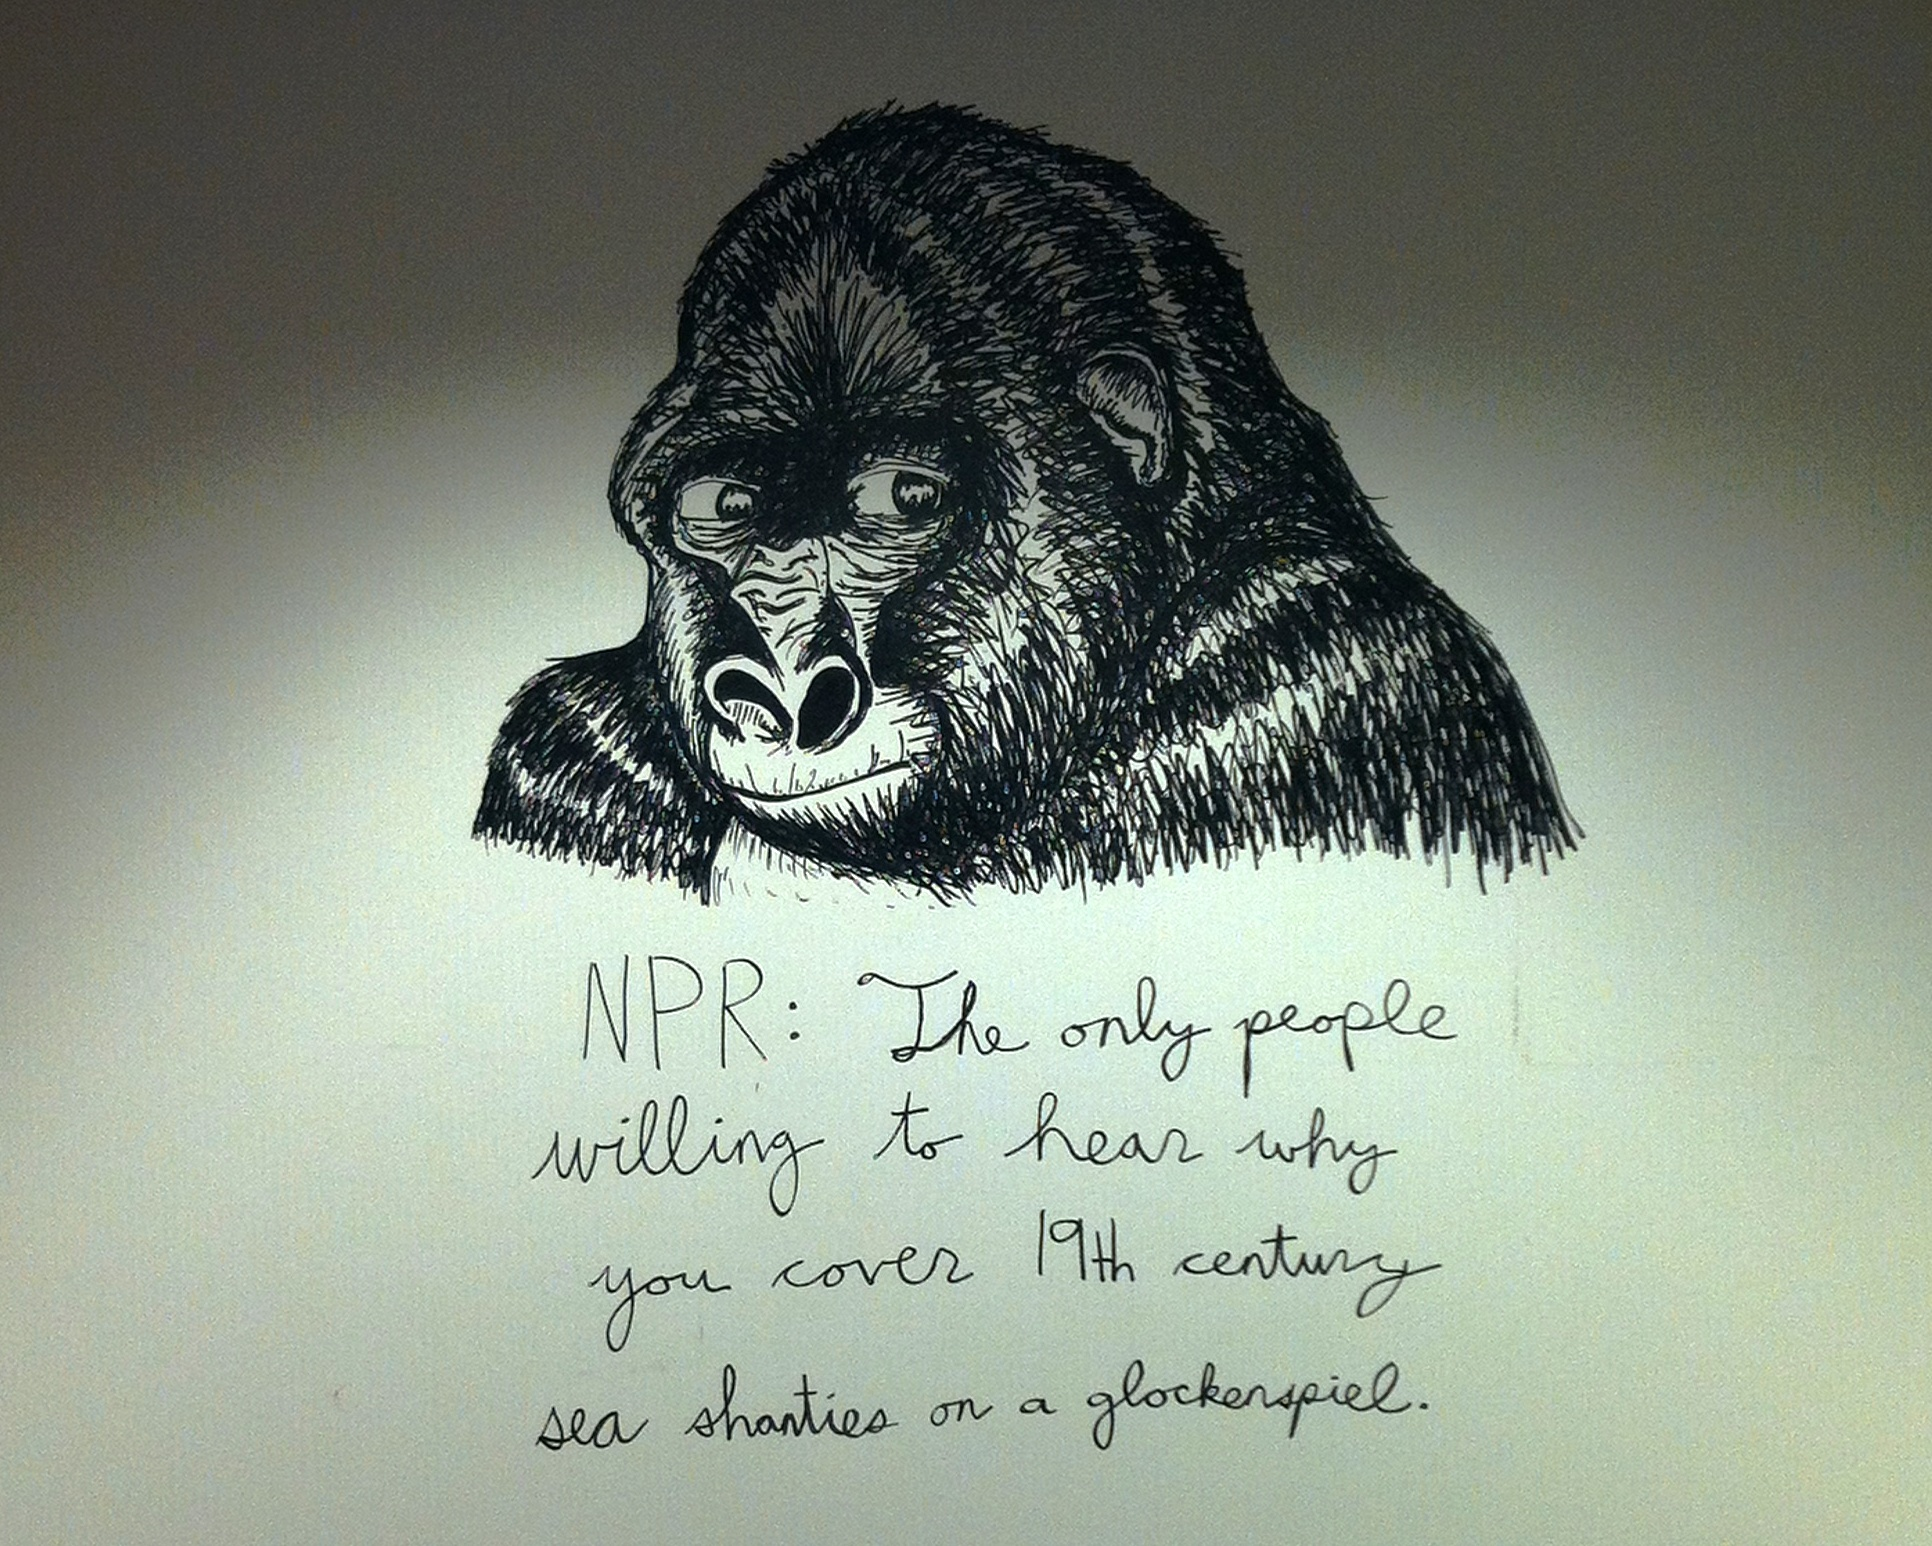 """NPR: The only people willing to hear why you cover 19th century sea shanties on a glockenspiel."""